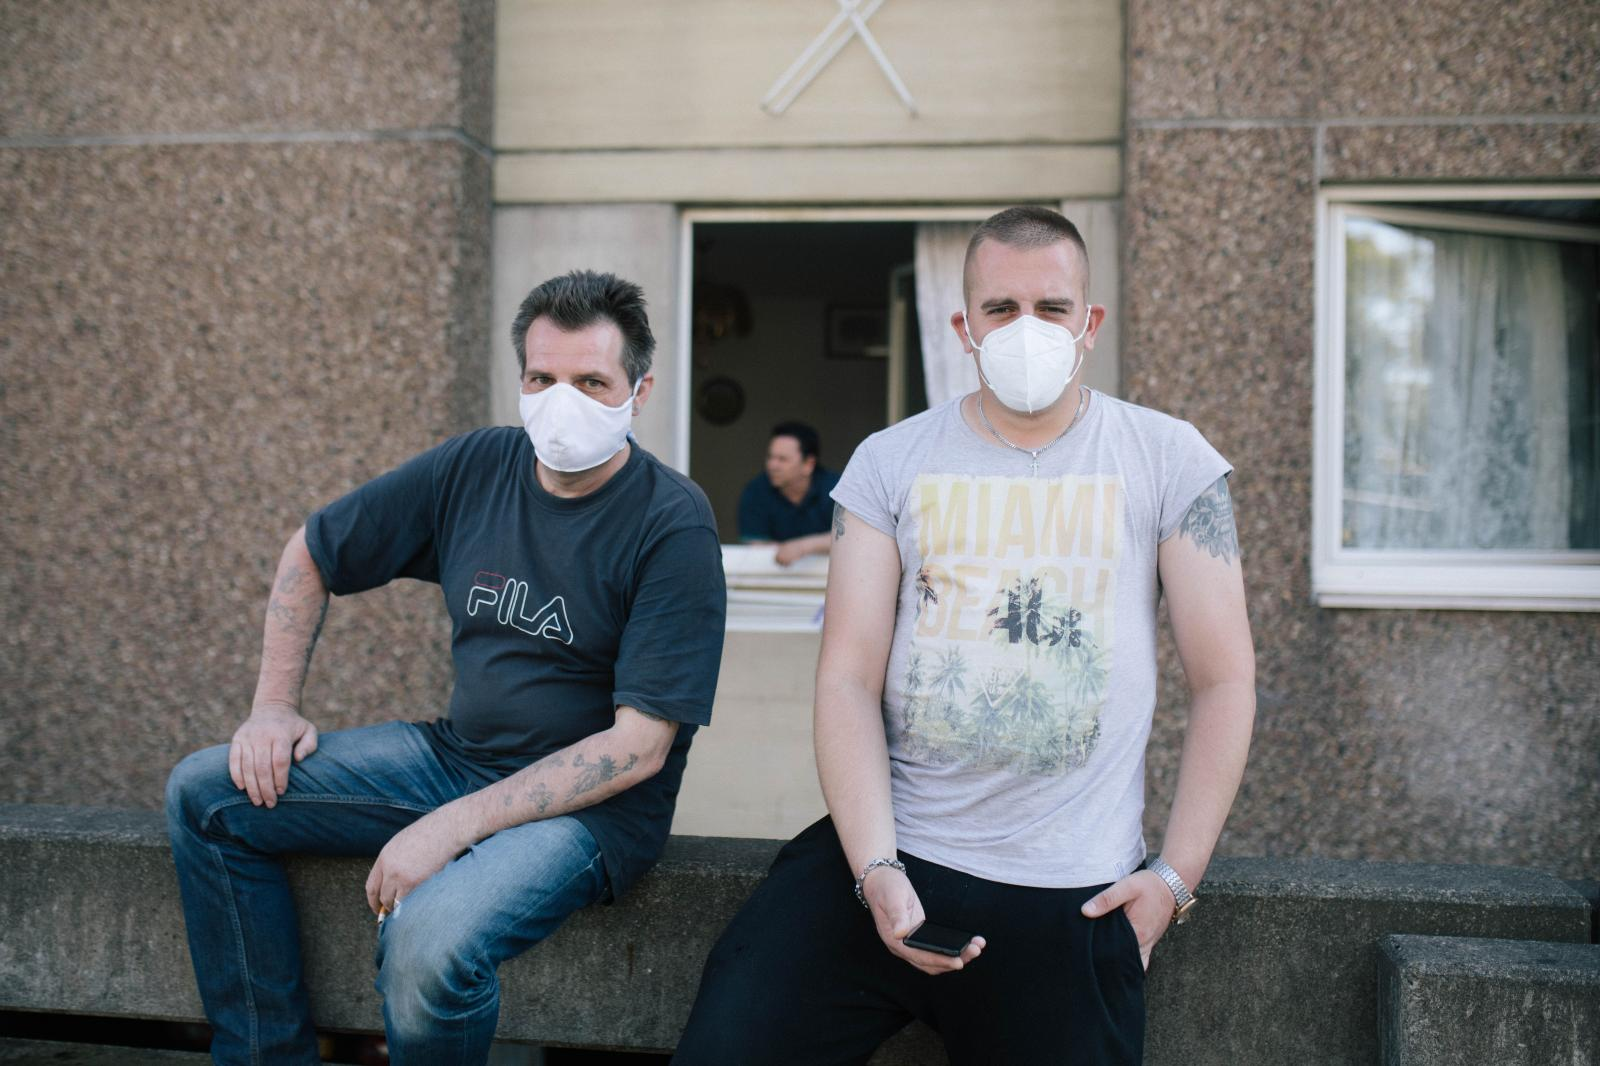 Two men, who want to stay anonymous, pose for a portrait in front of the building. One says that mildew is all over his appartement and that this has been going on since years. The city supplies the room to him. June 23rd